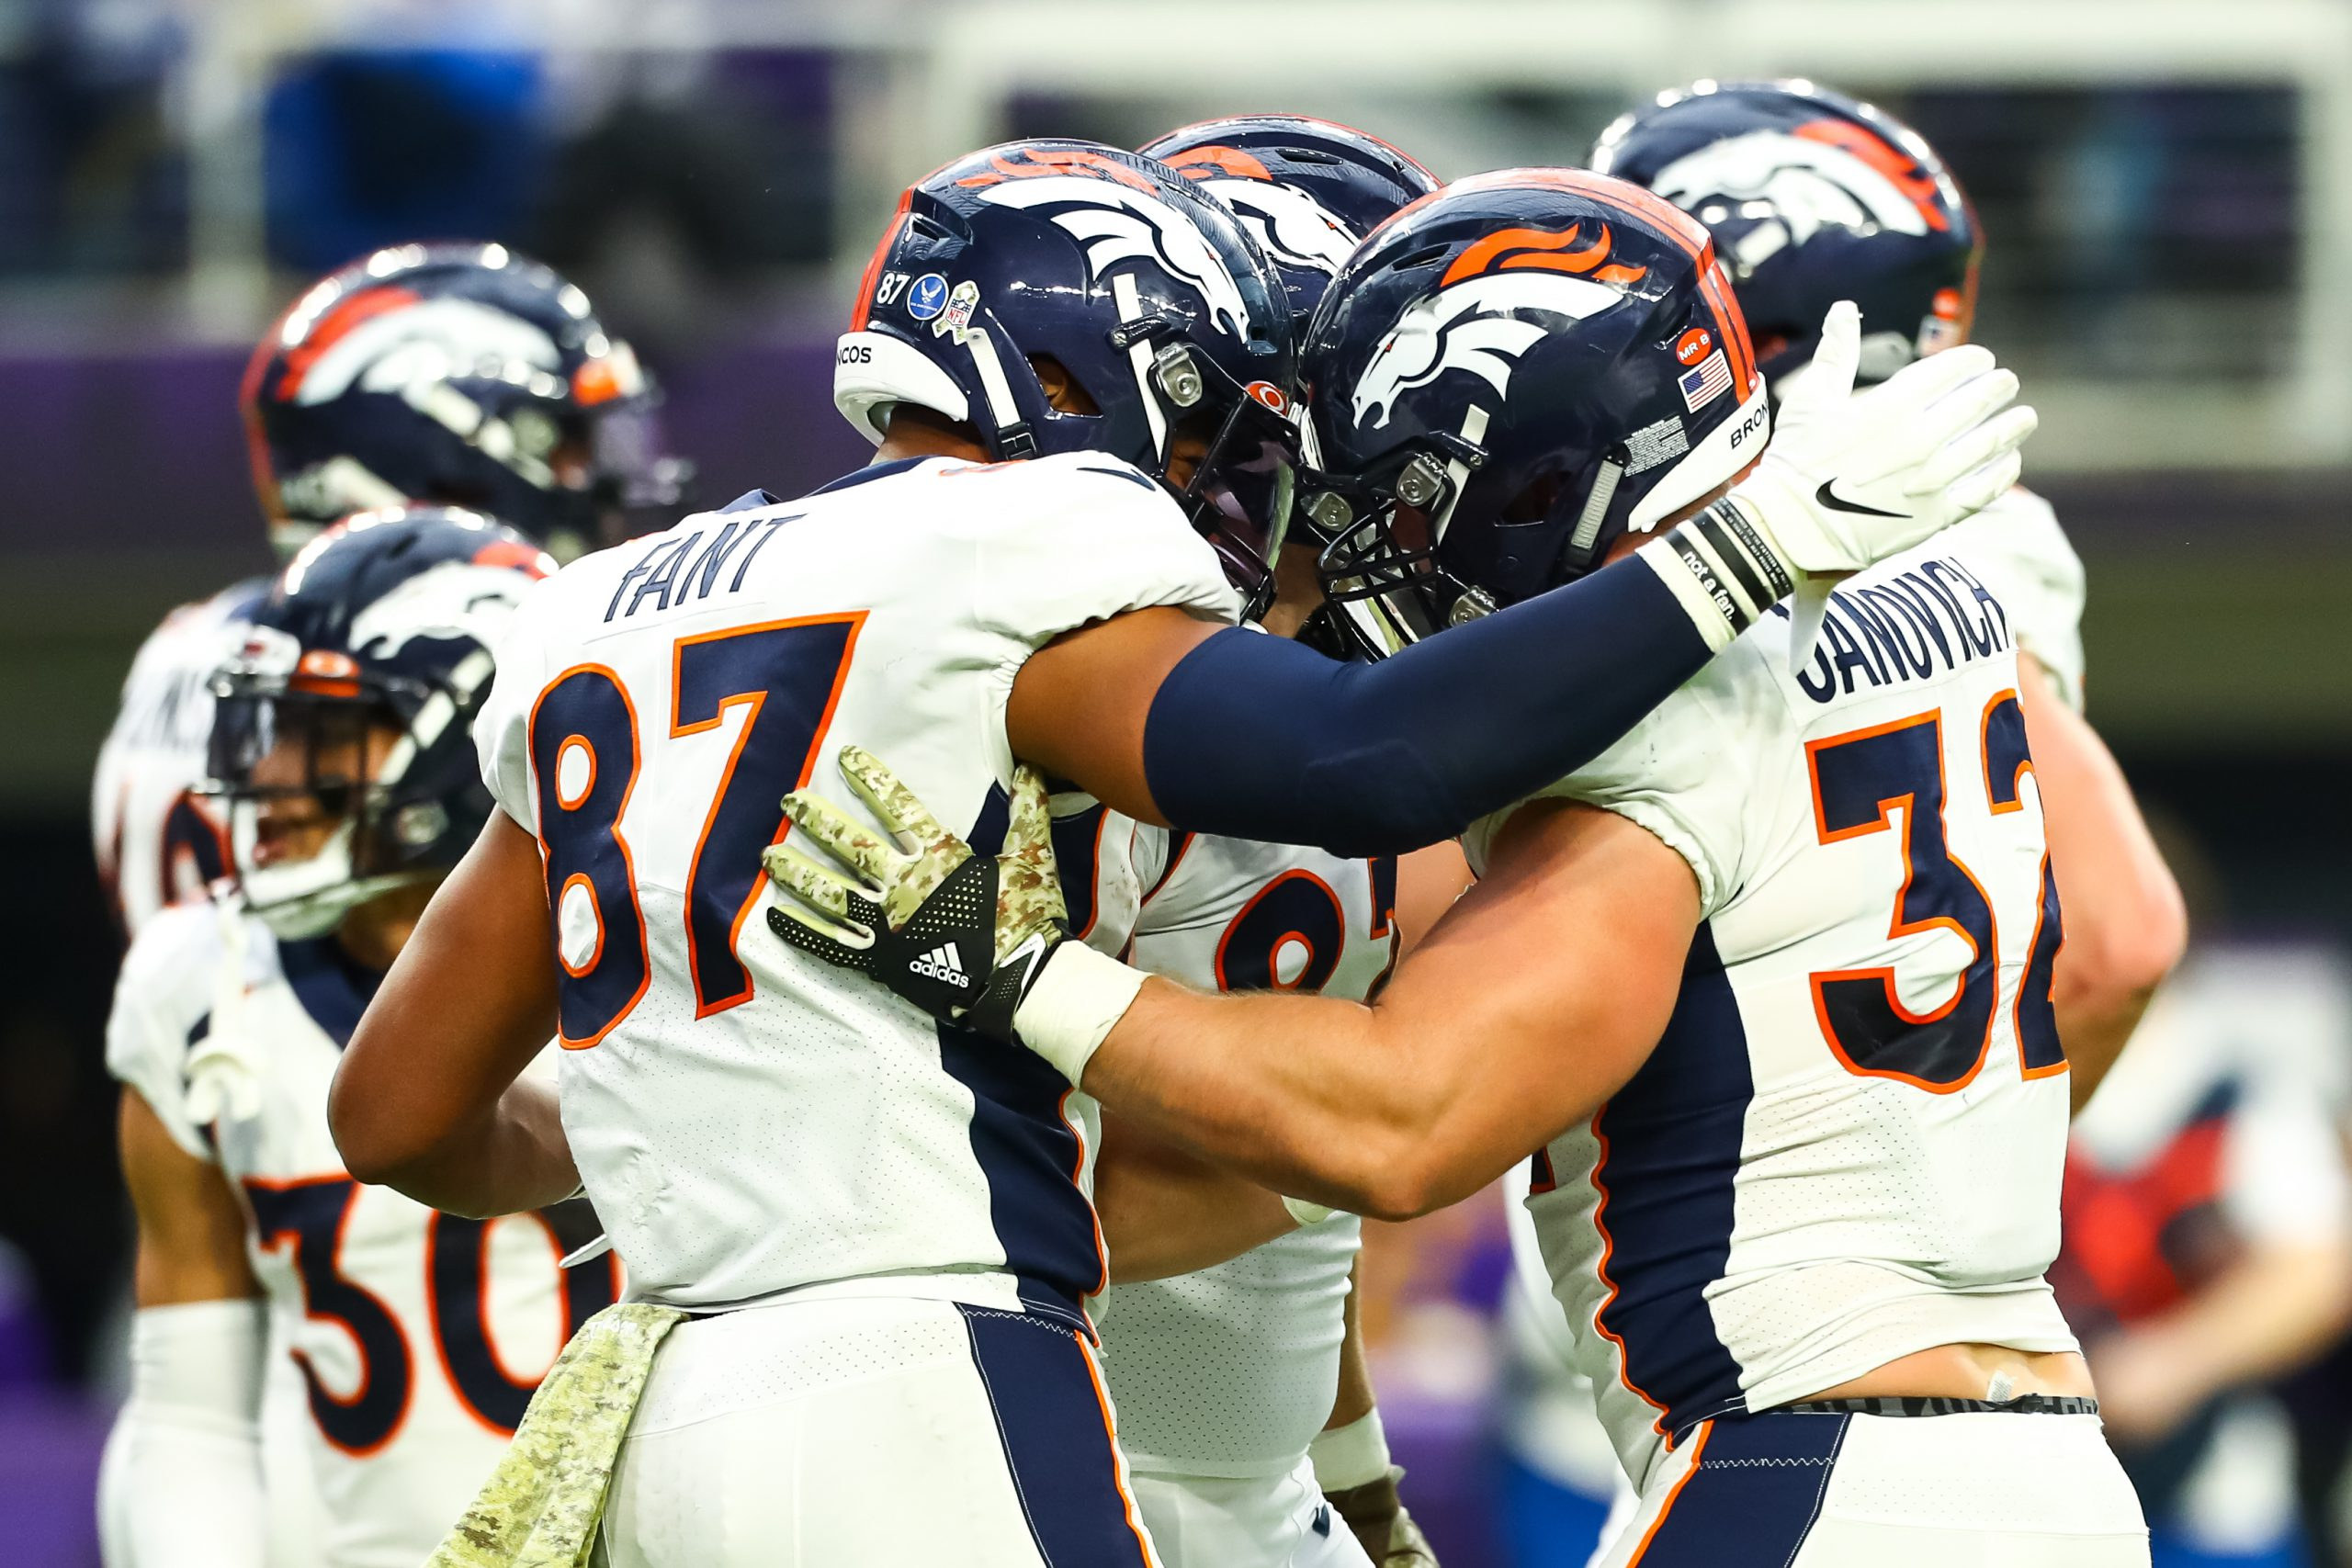 Nov 17, 2019; Minneapolis, MN, USA; Denver Broncos tight end Noah Fant (87) celebrates with fullback Andy Janovich (32) after Janovich scored a touchdown in the first quarter against the Minnesota Vikings at U.S. Bank Stadium. Mandatory Credit: David Berding-USA TODAY Sports